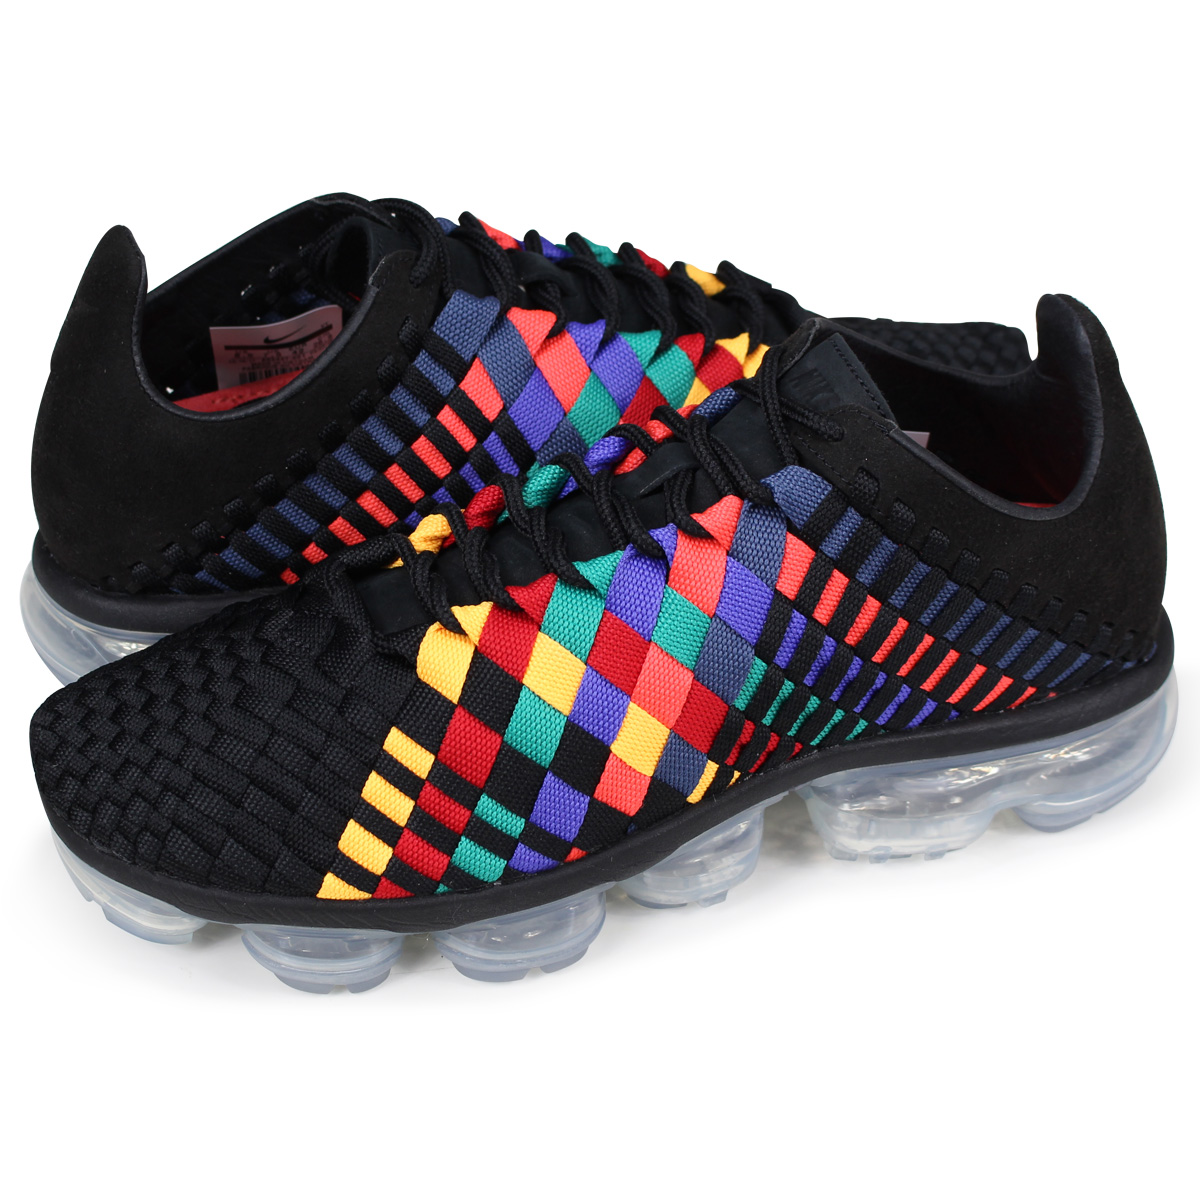 sneakers for cheap ae493 5fa6c Product Information